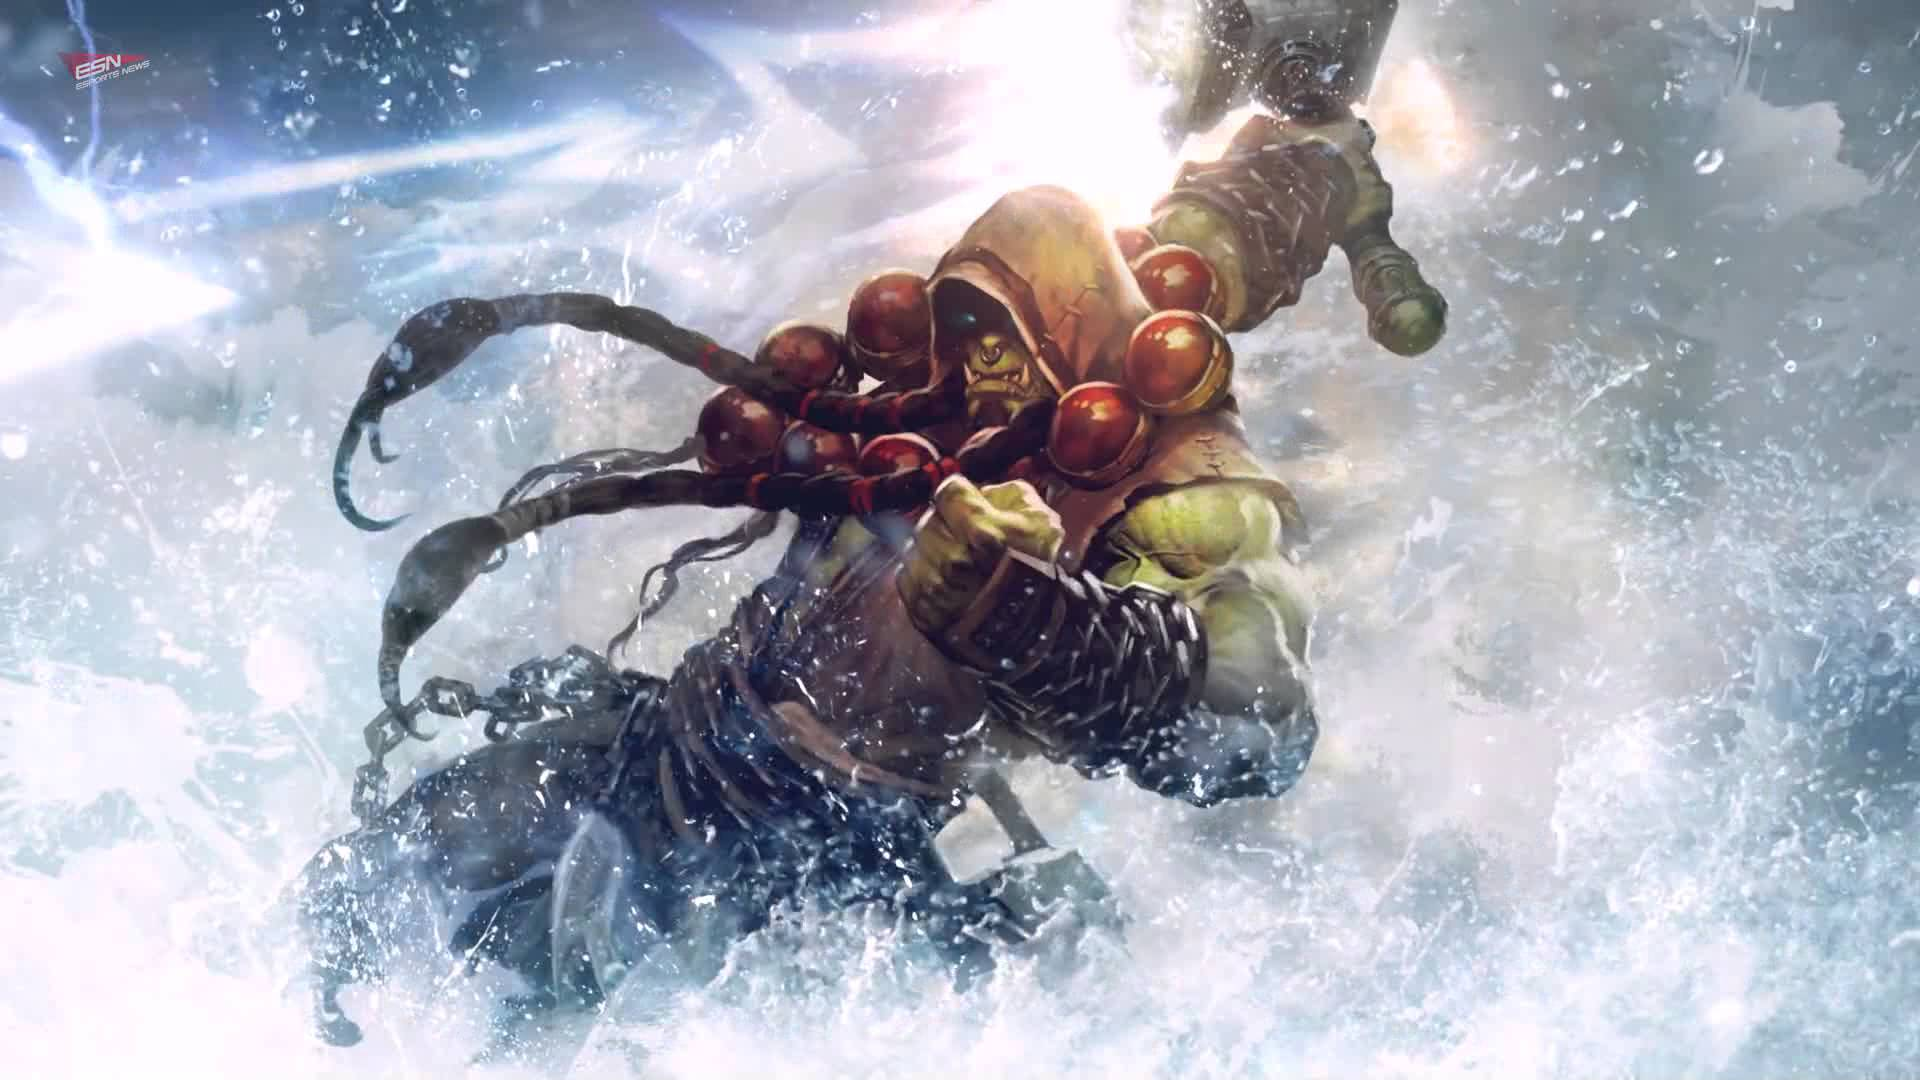 Hearthstone: Thrall full hd wallpapers